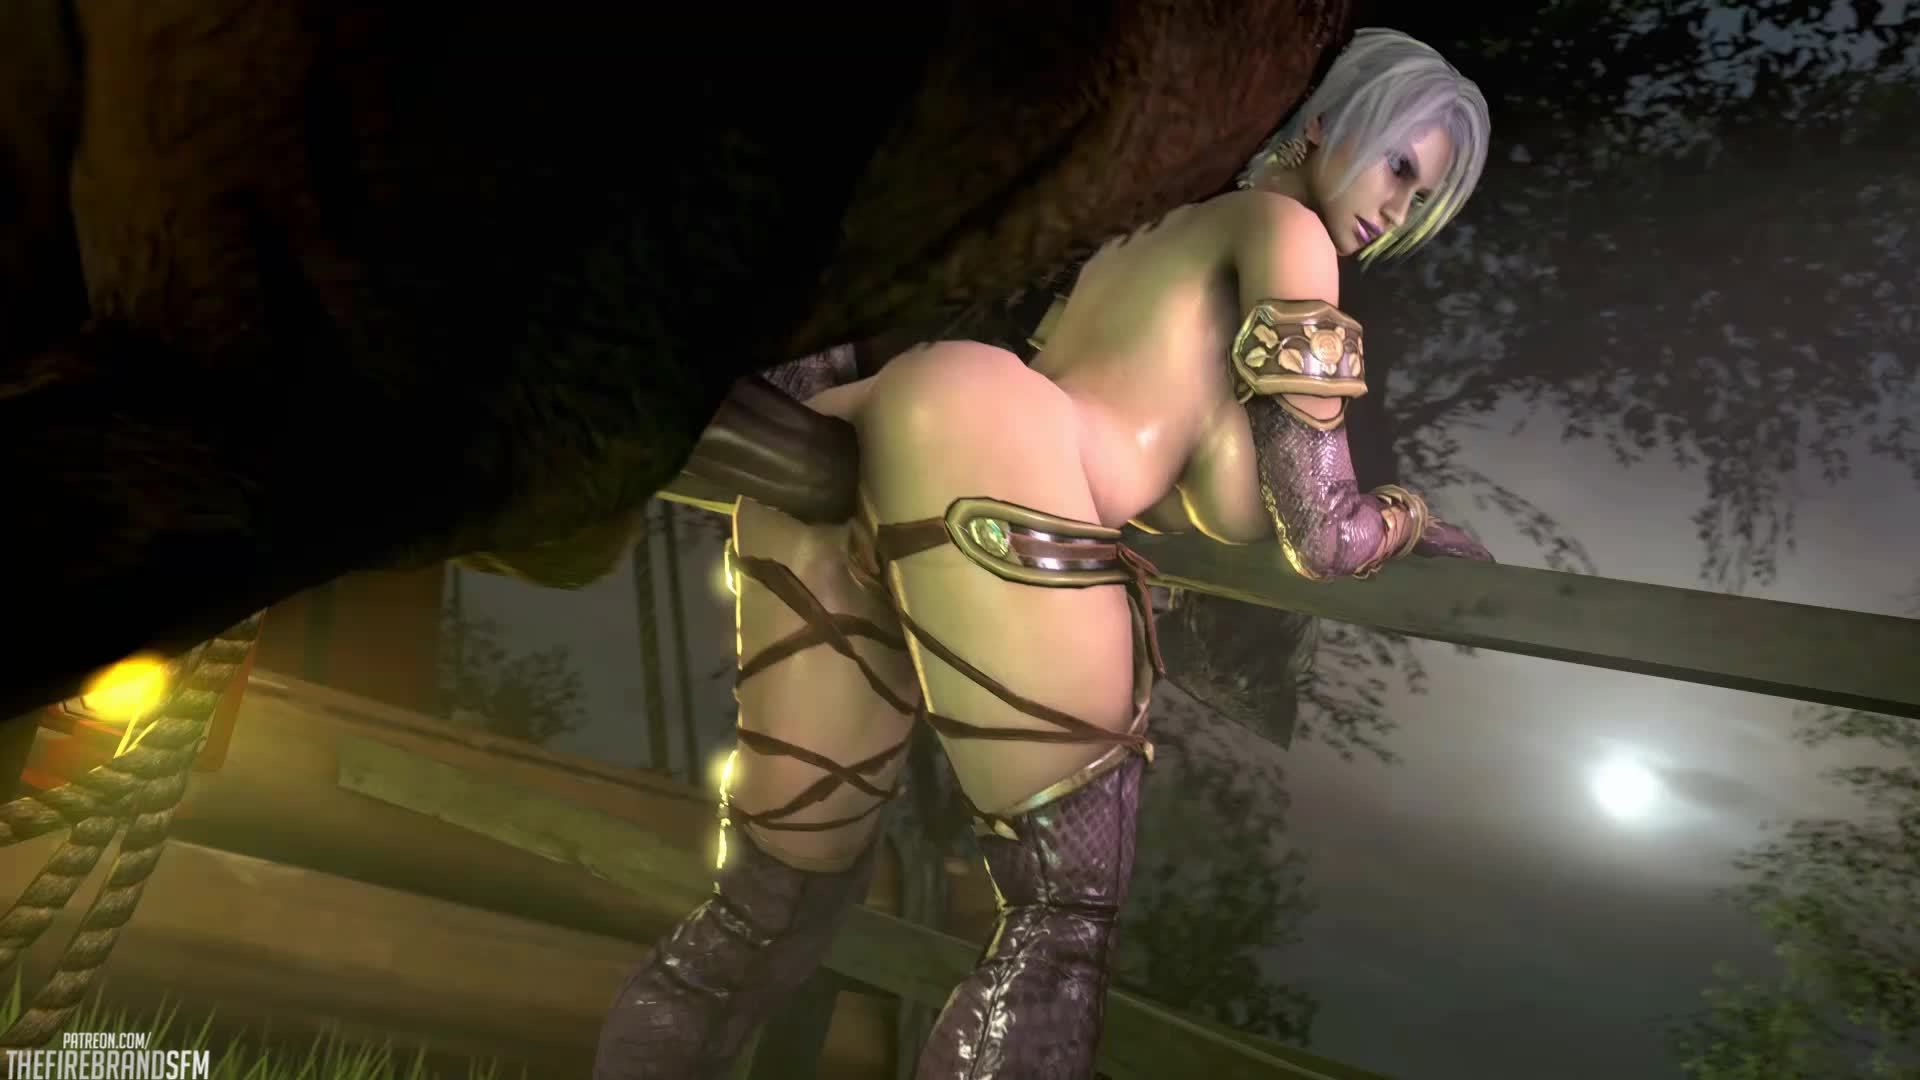 holy shit its soul calibur hentai